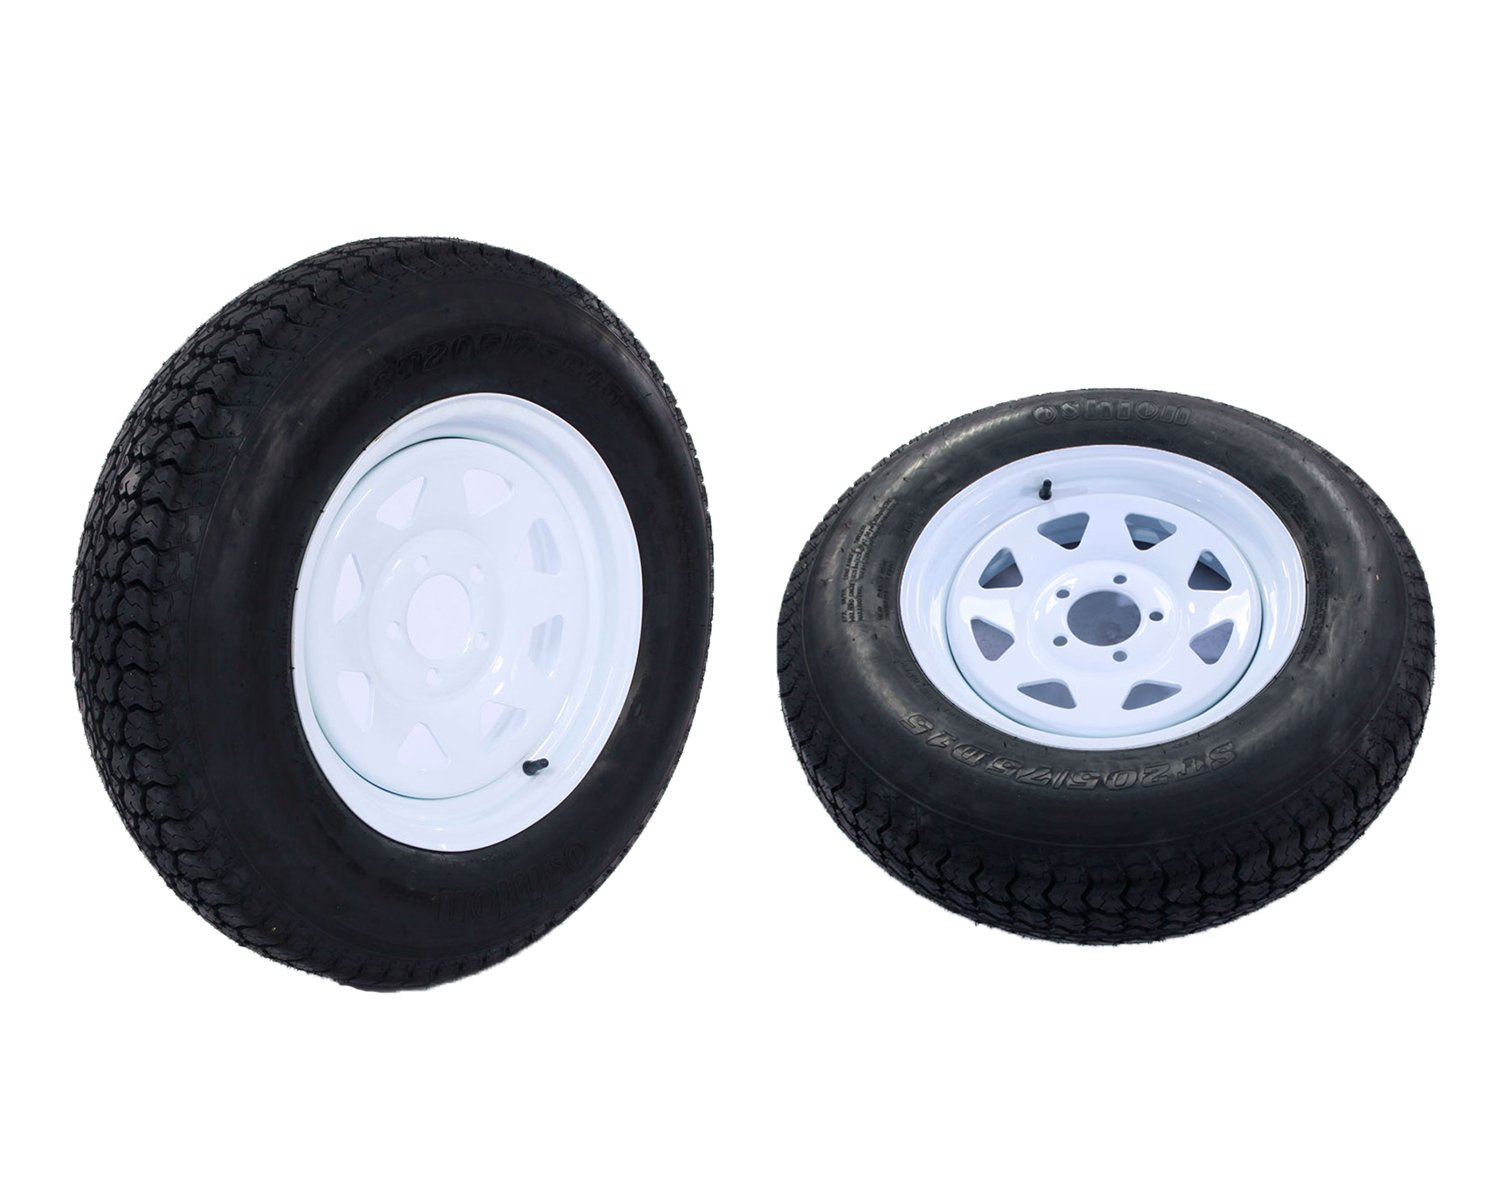 "2PCS 15"" White Spoke Trailer Tires & Rims ST205/75D15 Tire Mounted (5x4.5) Bolt Circle Trailer Wheel with Bias"